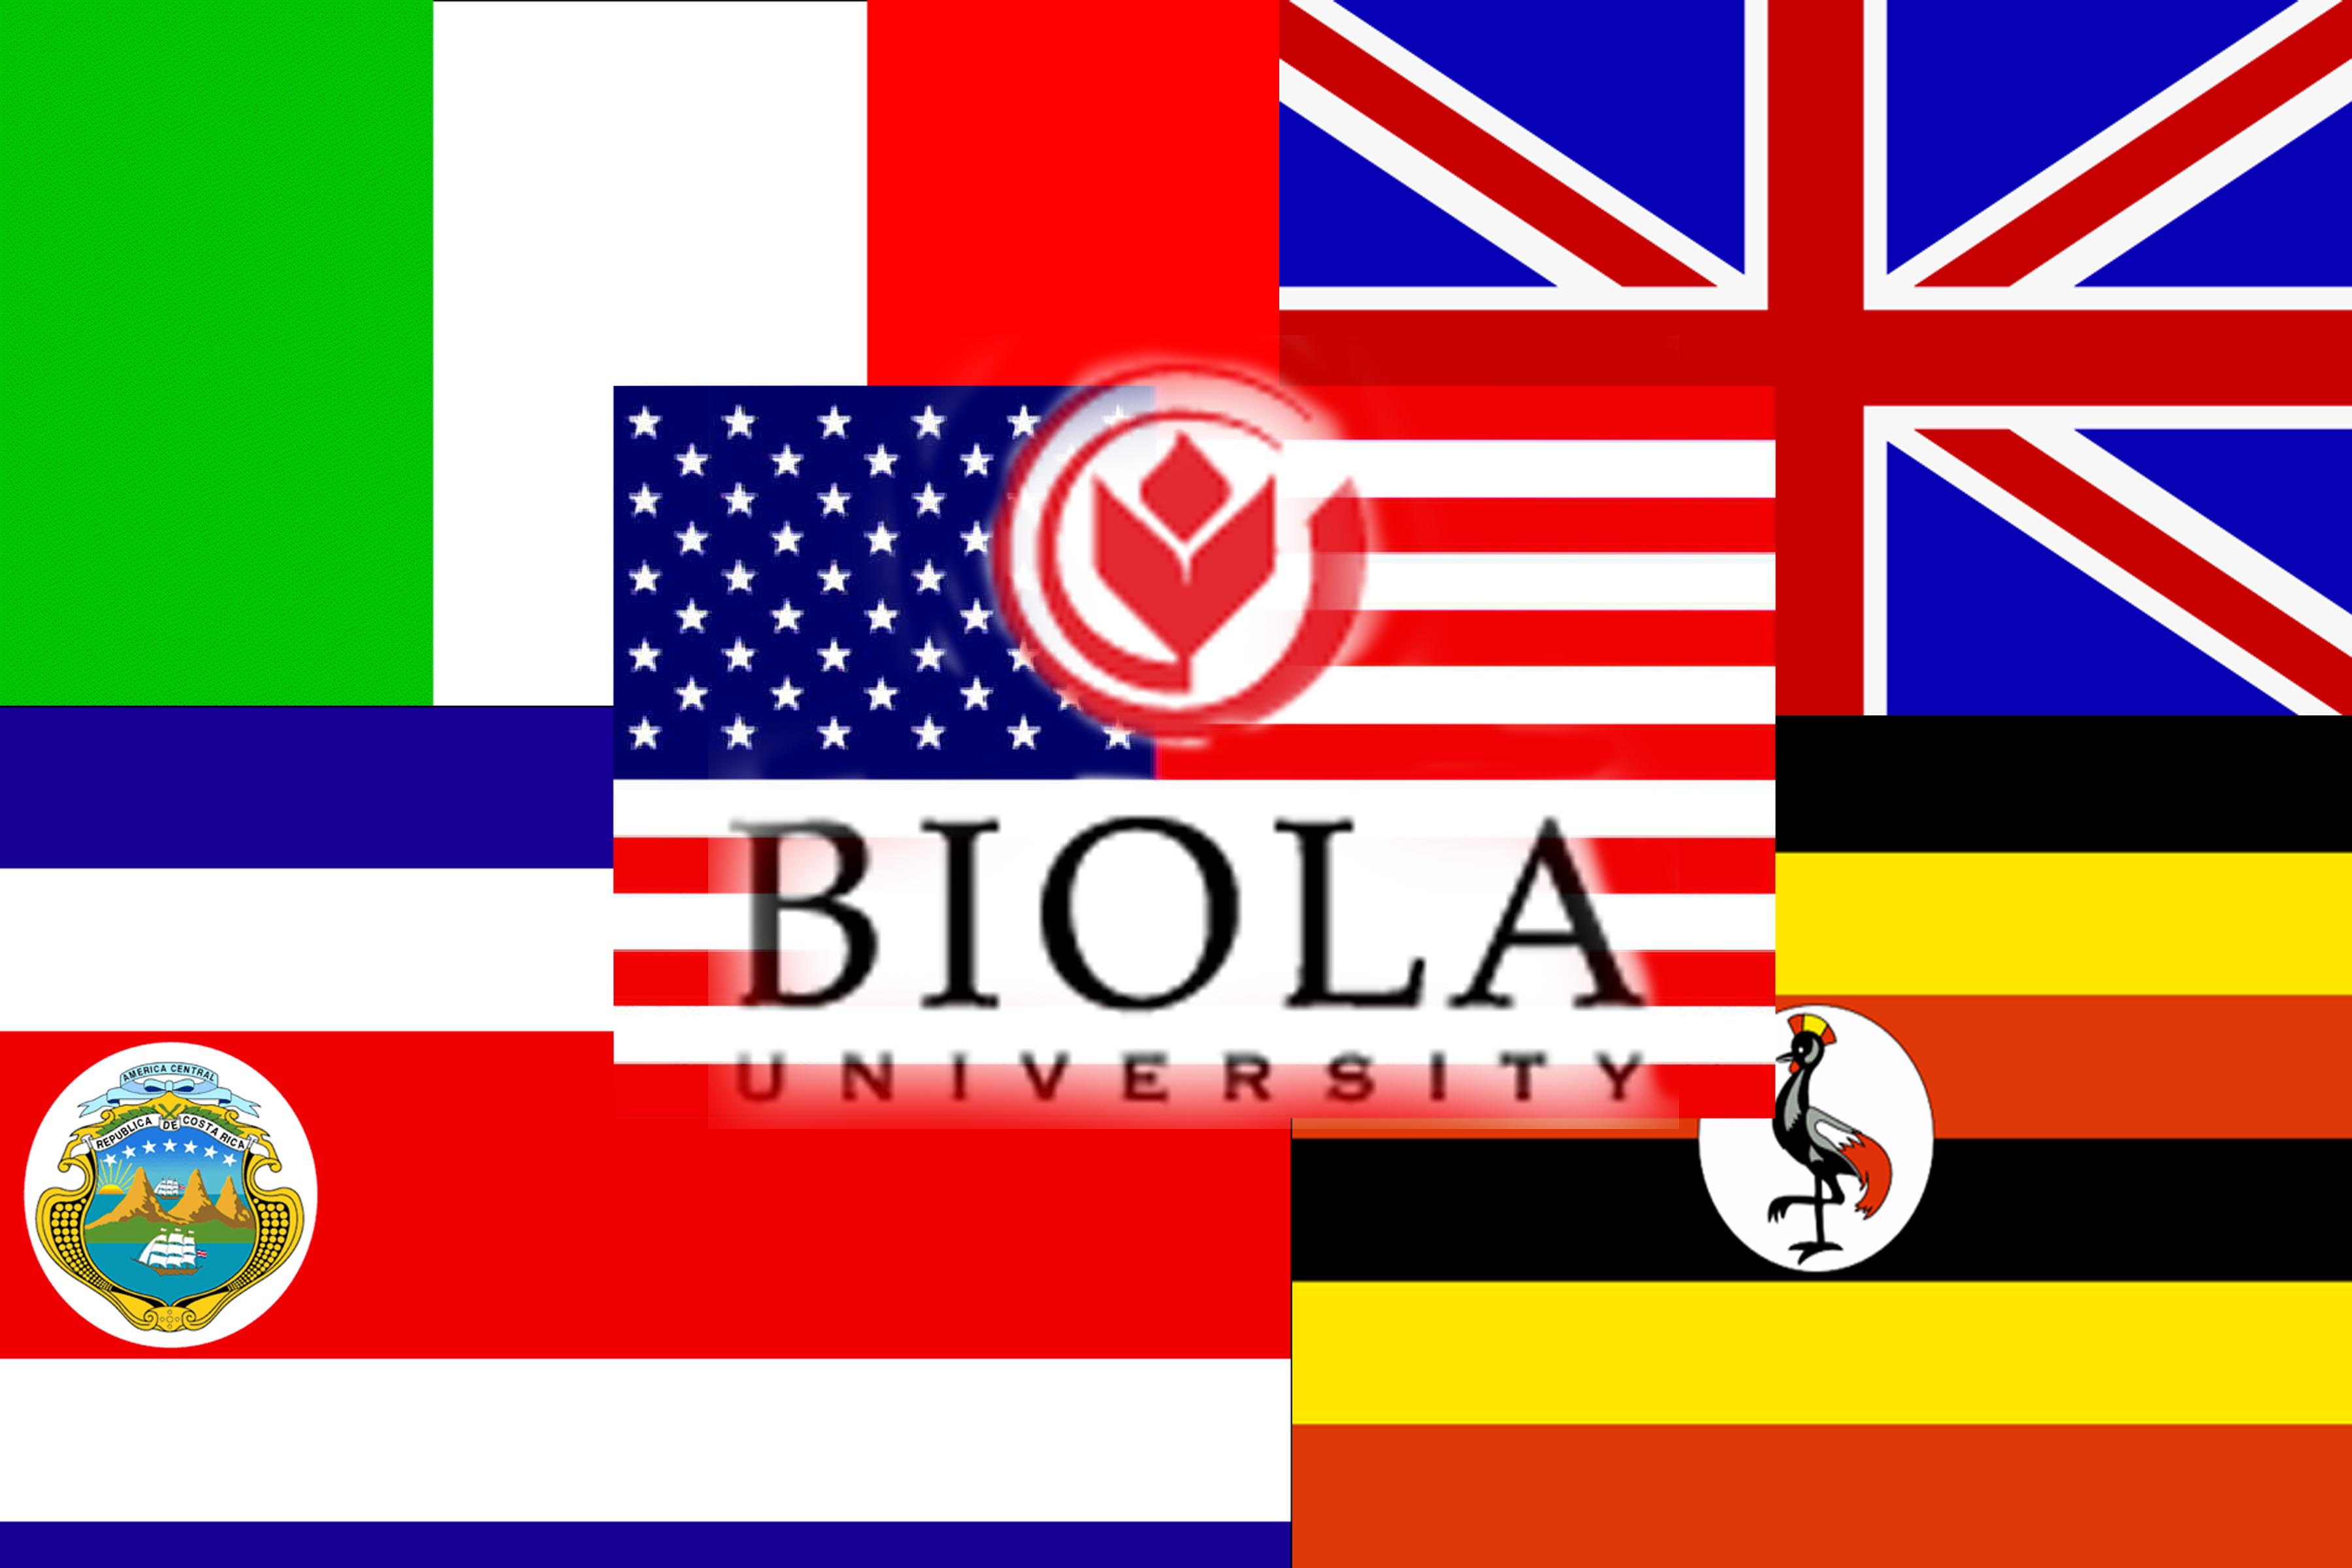 Biola University offers a wide variety of study abroad programs that many students take advantage of.